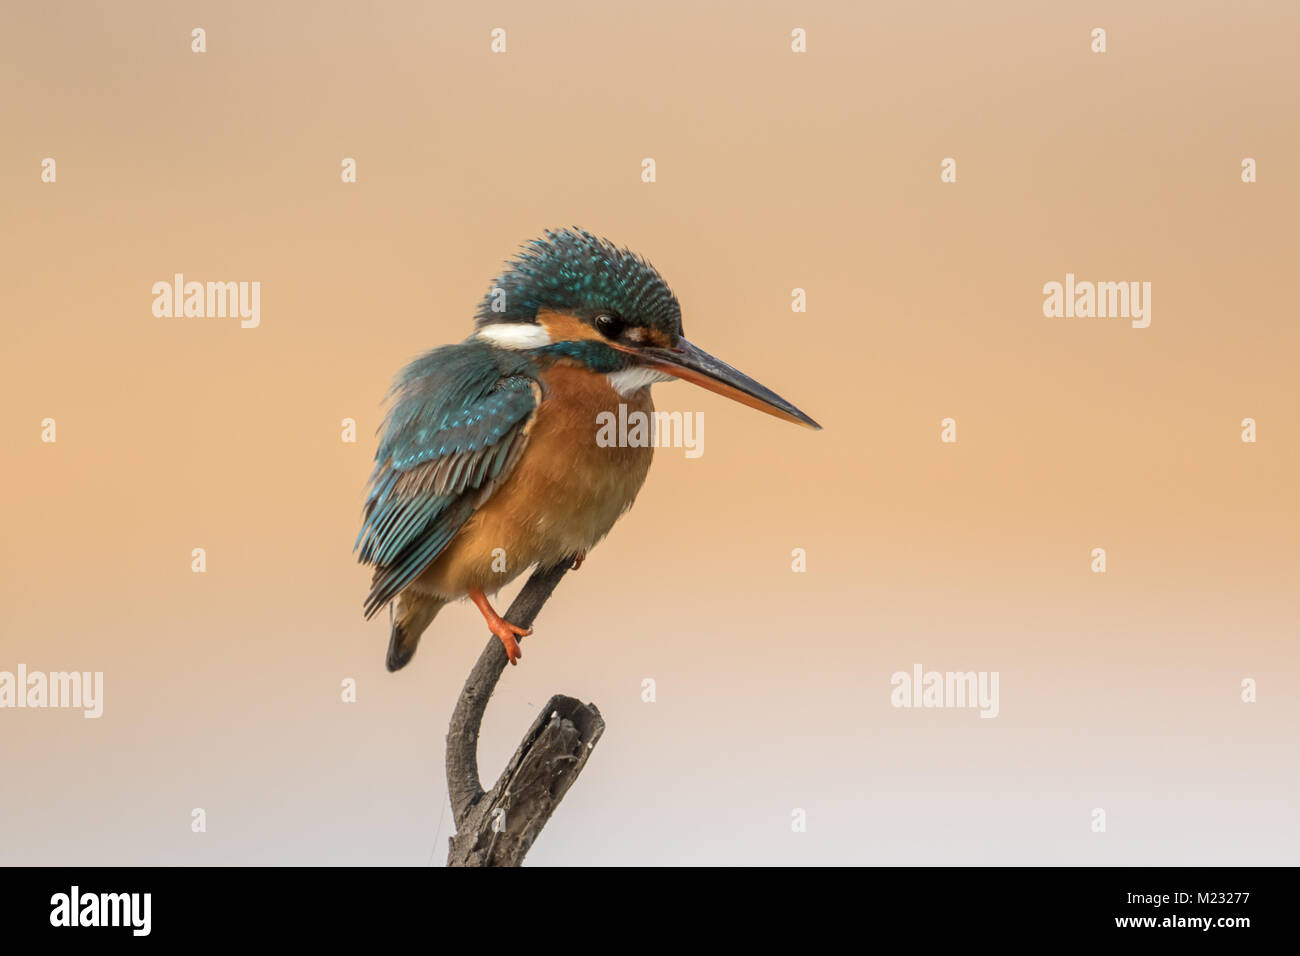 The common kingfisher (Alcedo atthis) bird at Bharatpur Bird Sanctuary in Rajasthan, India - Stock Image